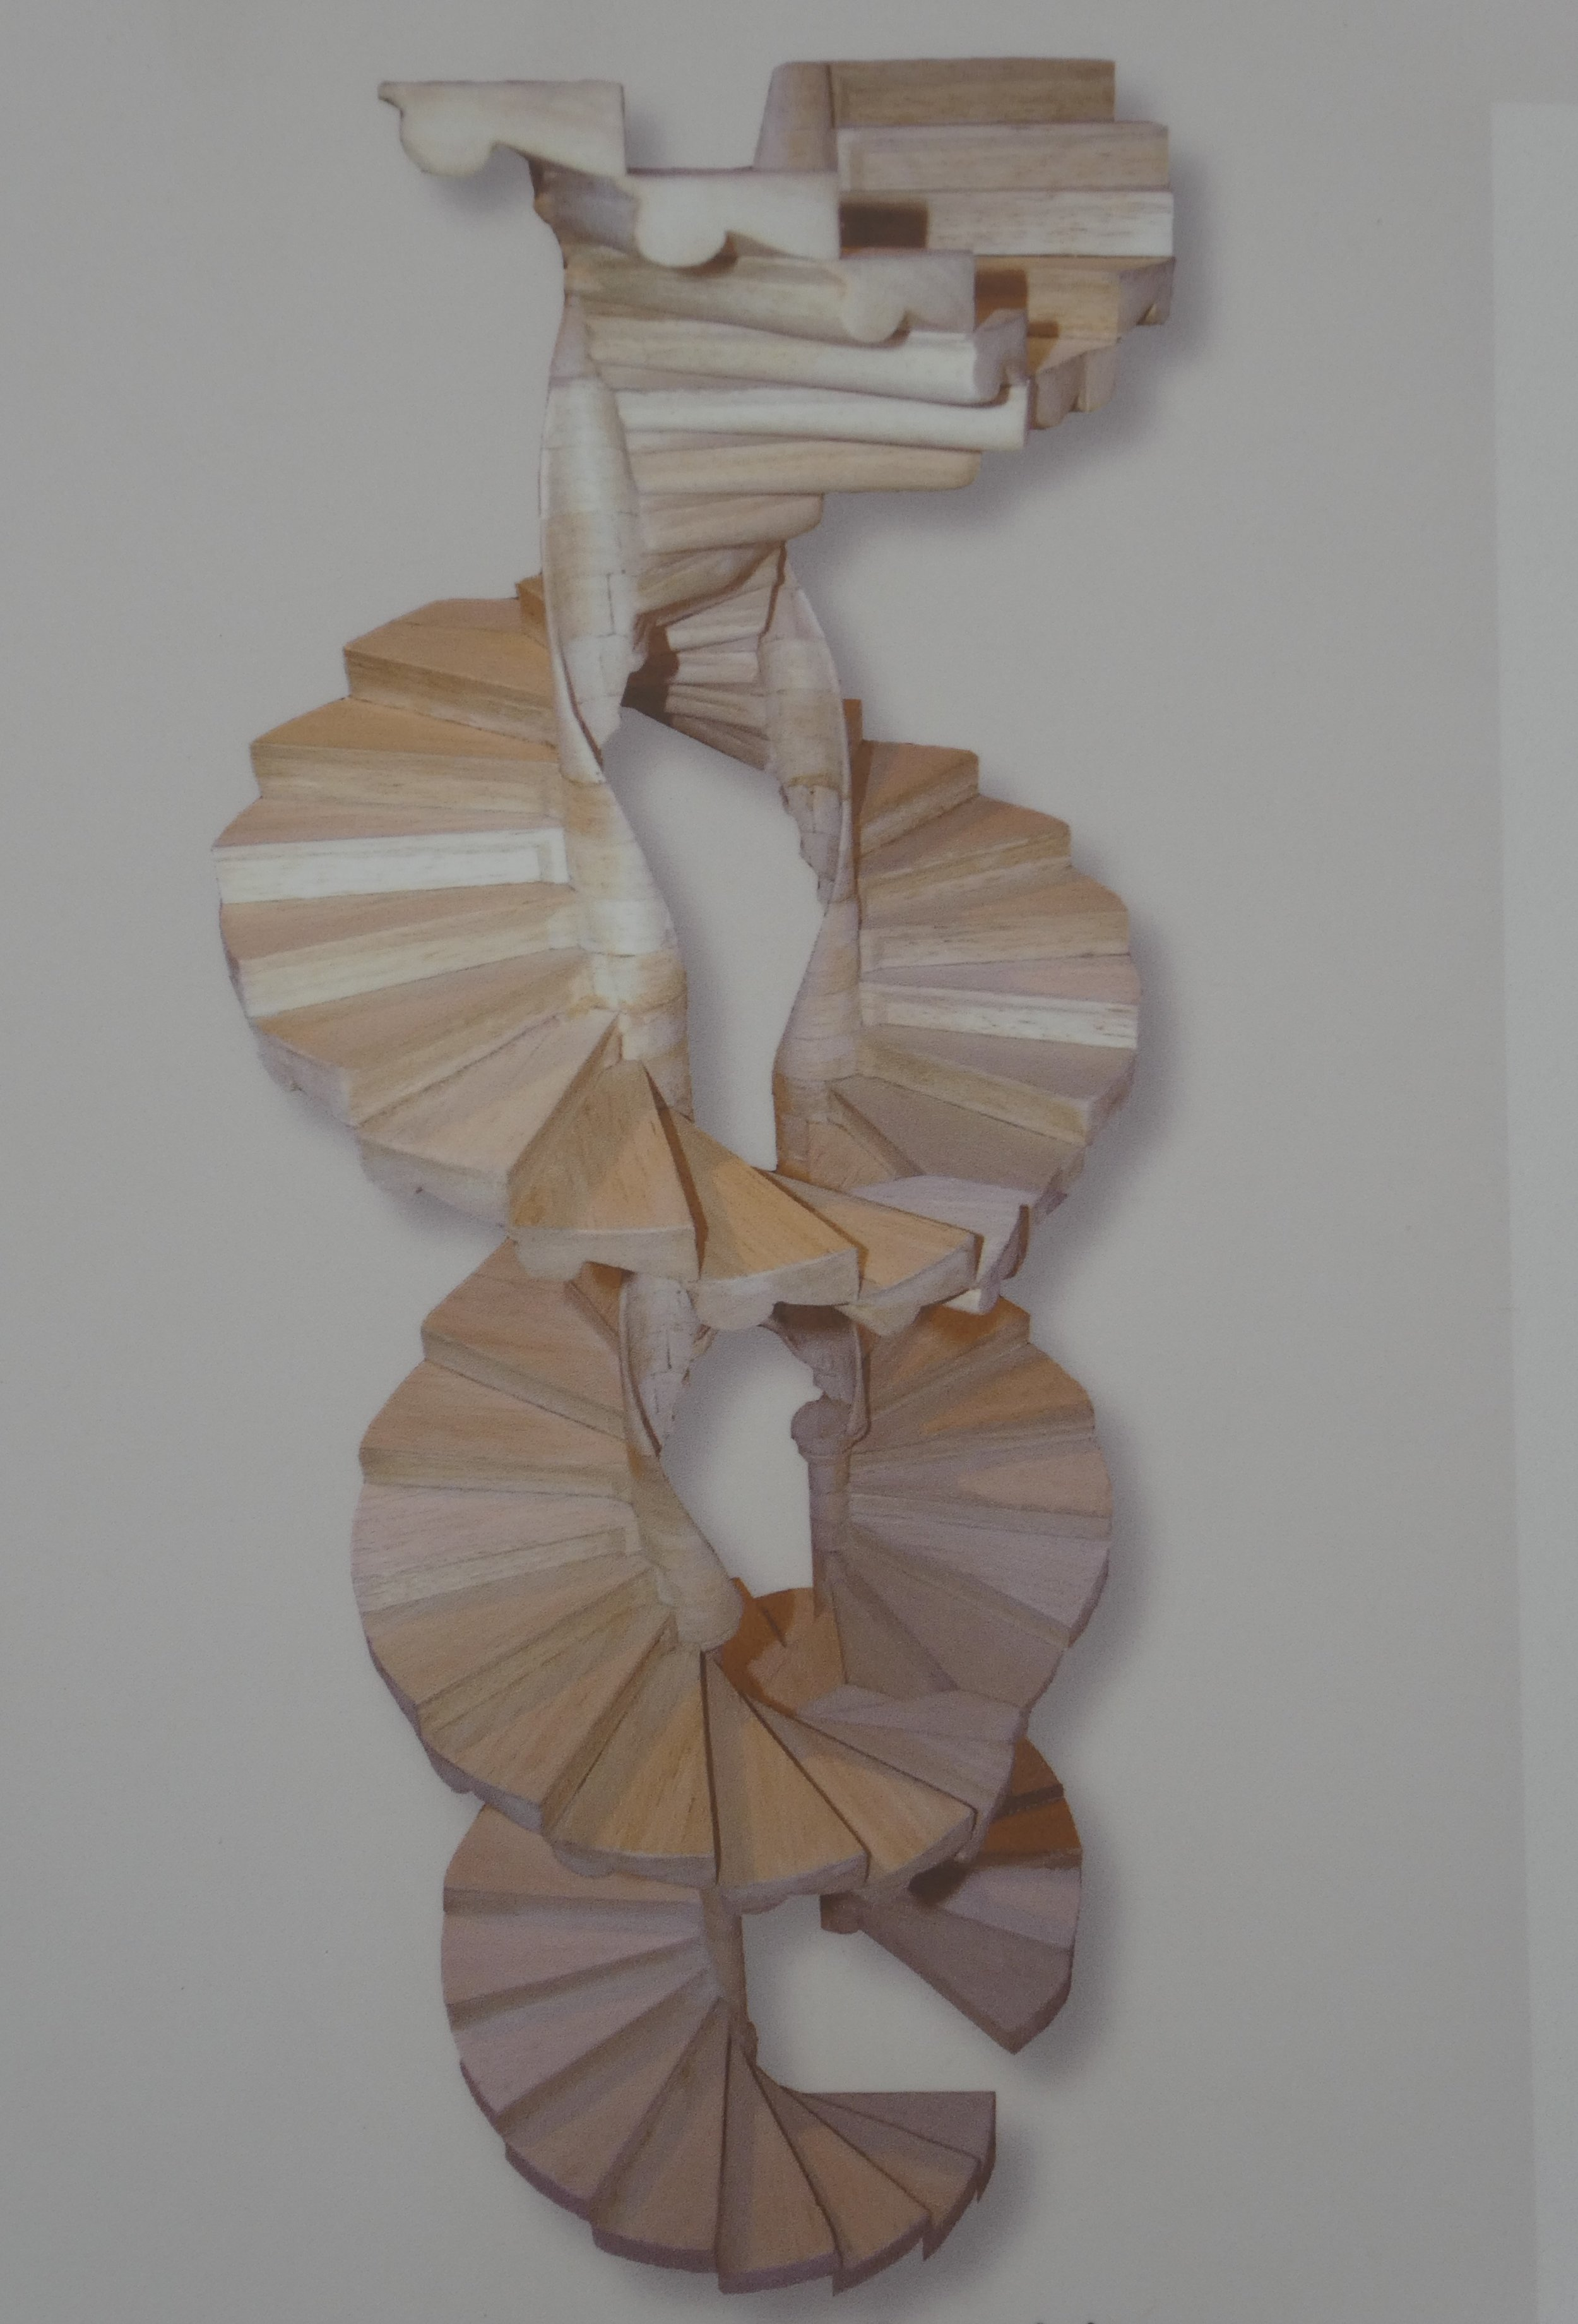 Model of double spiral staircase in Graz, Austria